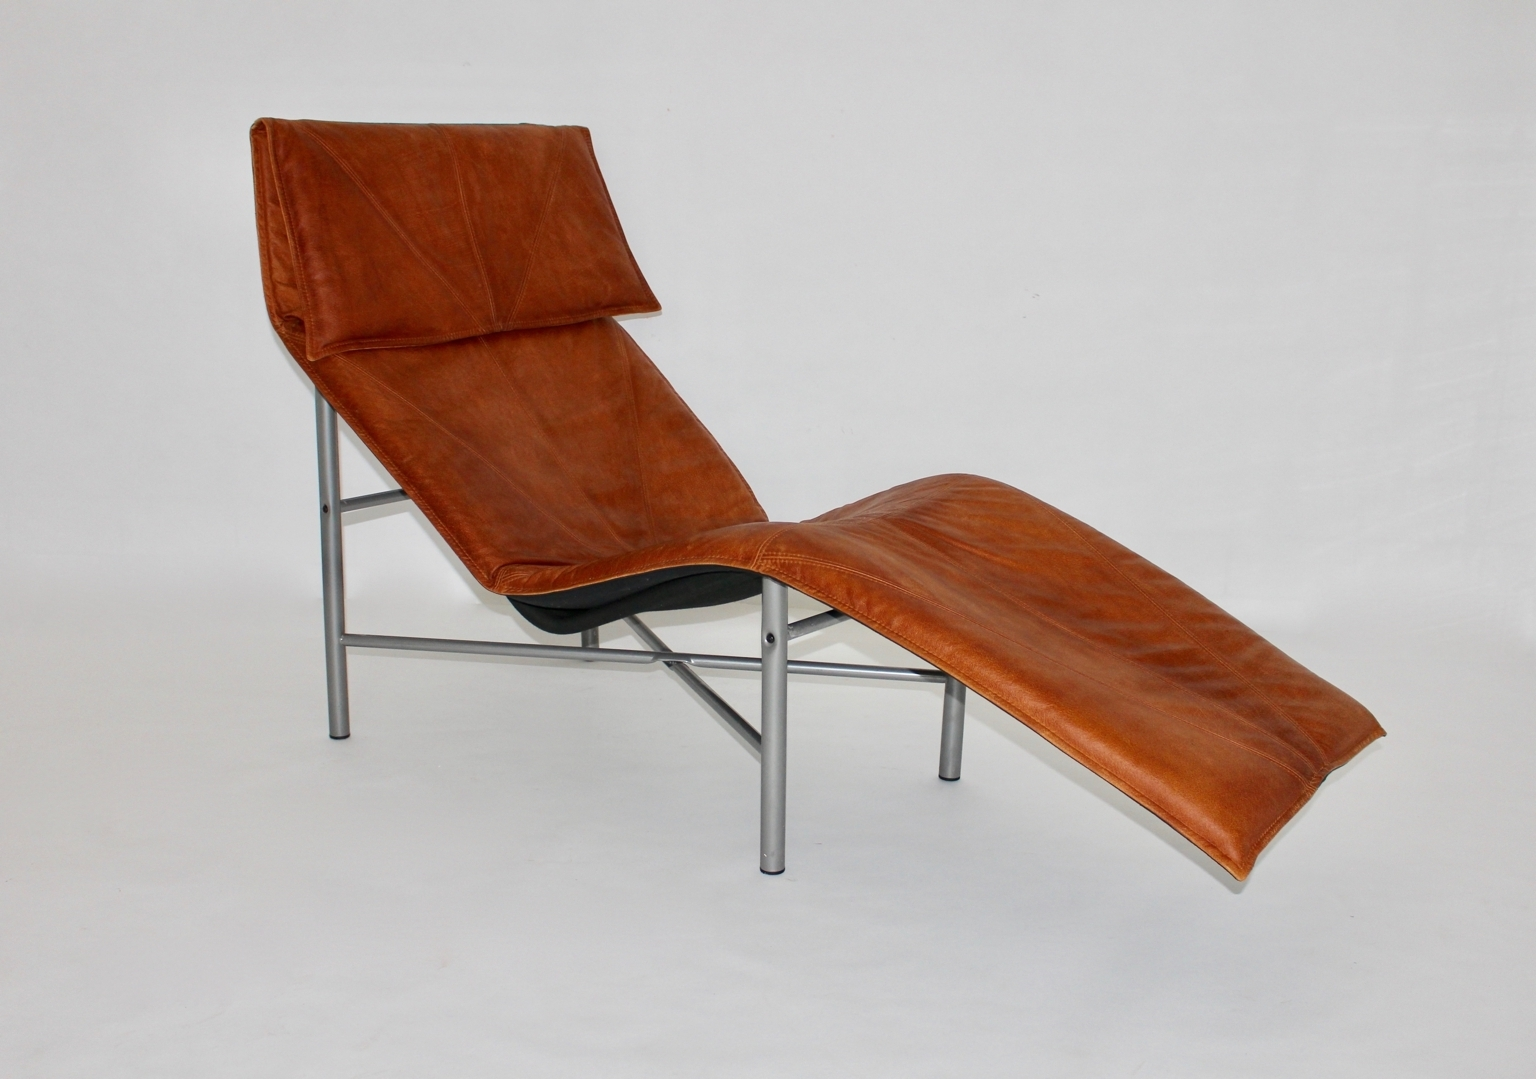 Latest Leather Chaise Lounges Pertaining To Swedish Cognac Leather Chaise Loungetord Bjorklund, 1970s For (View 9 of 15)